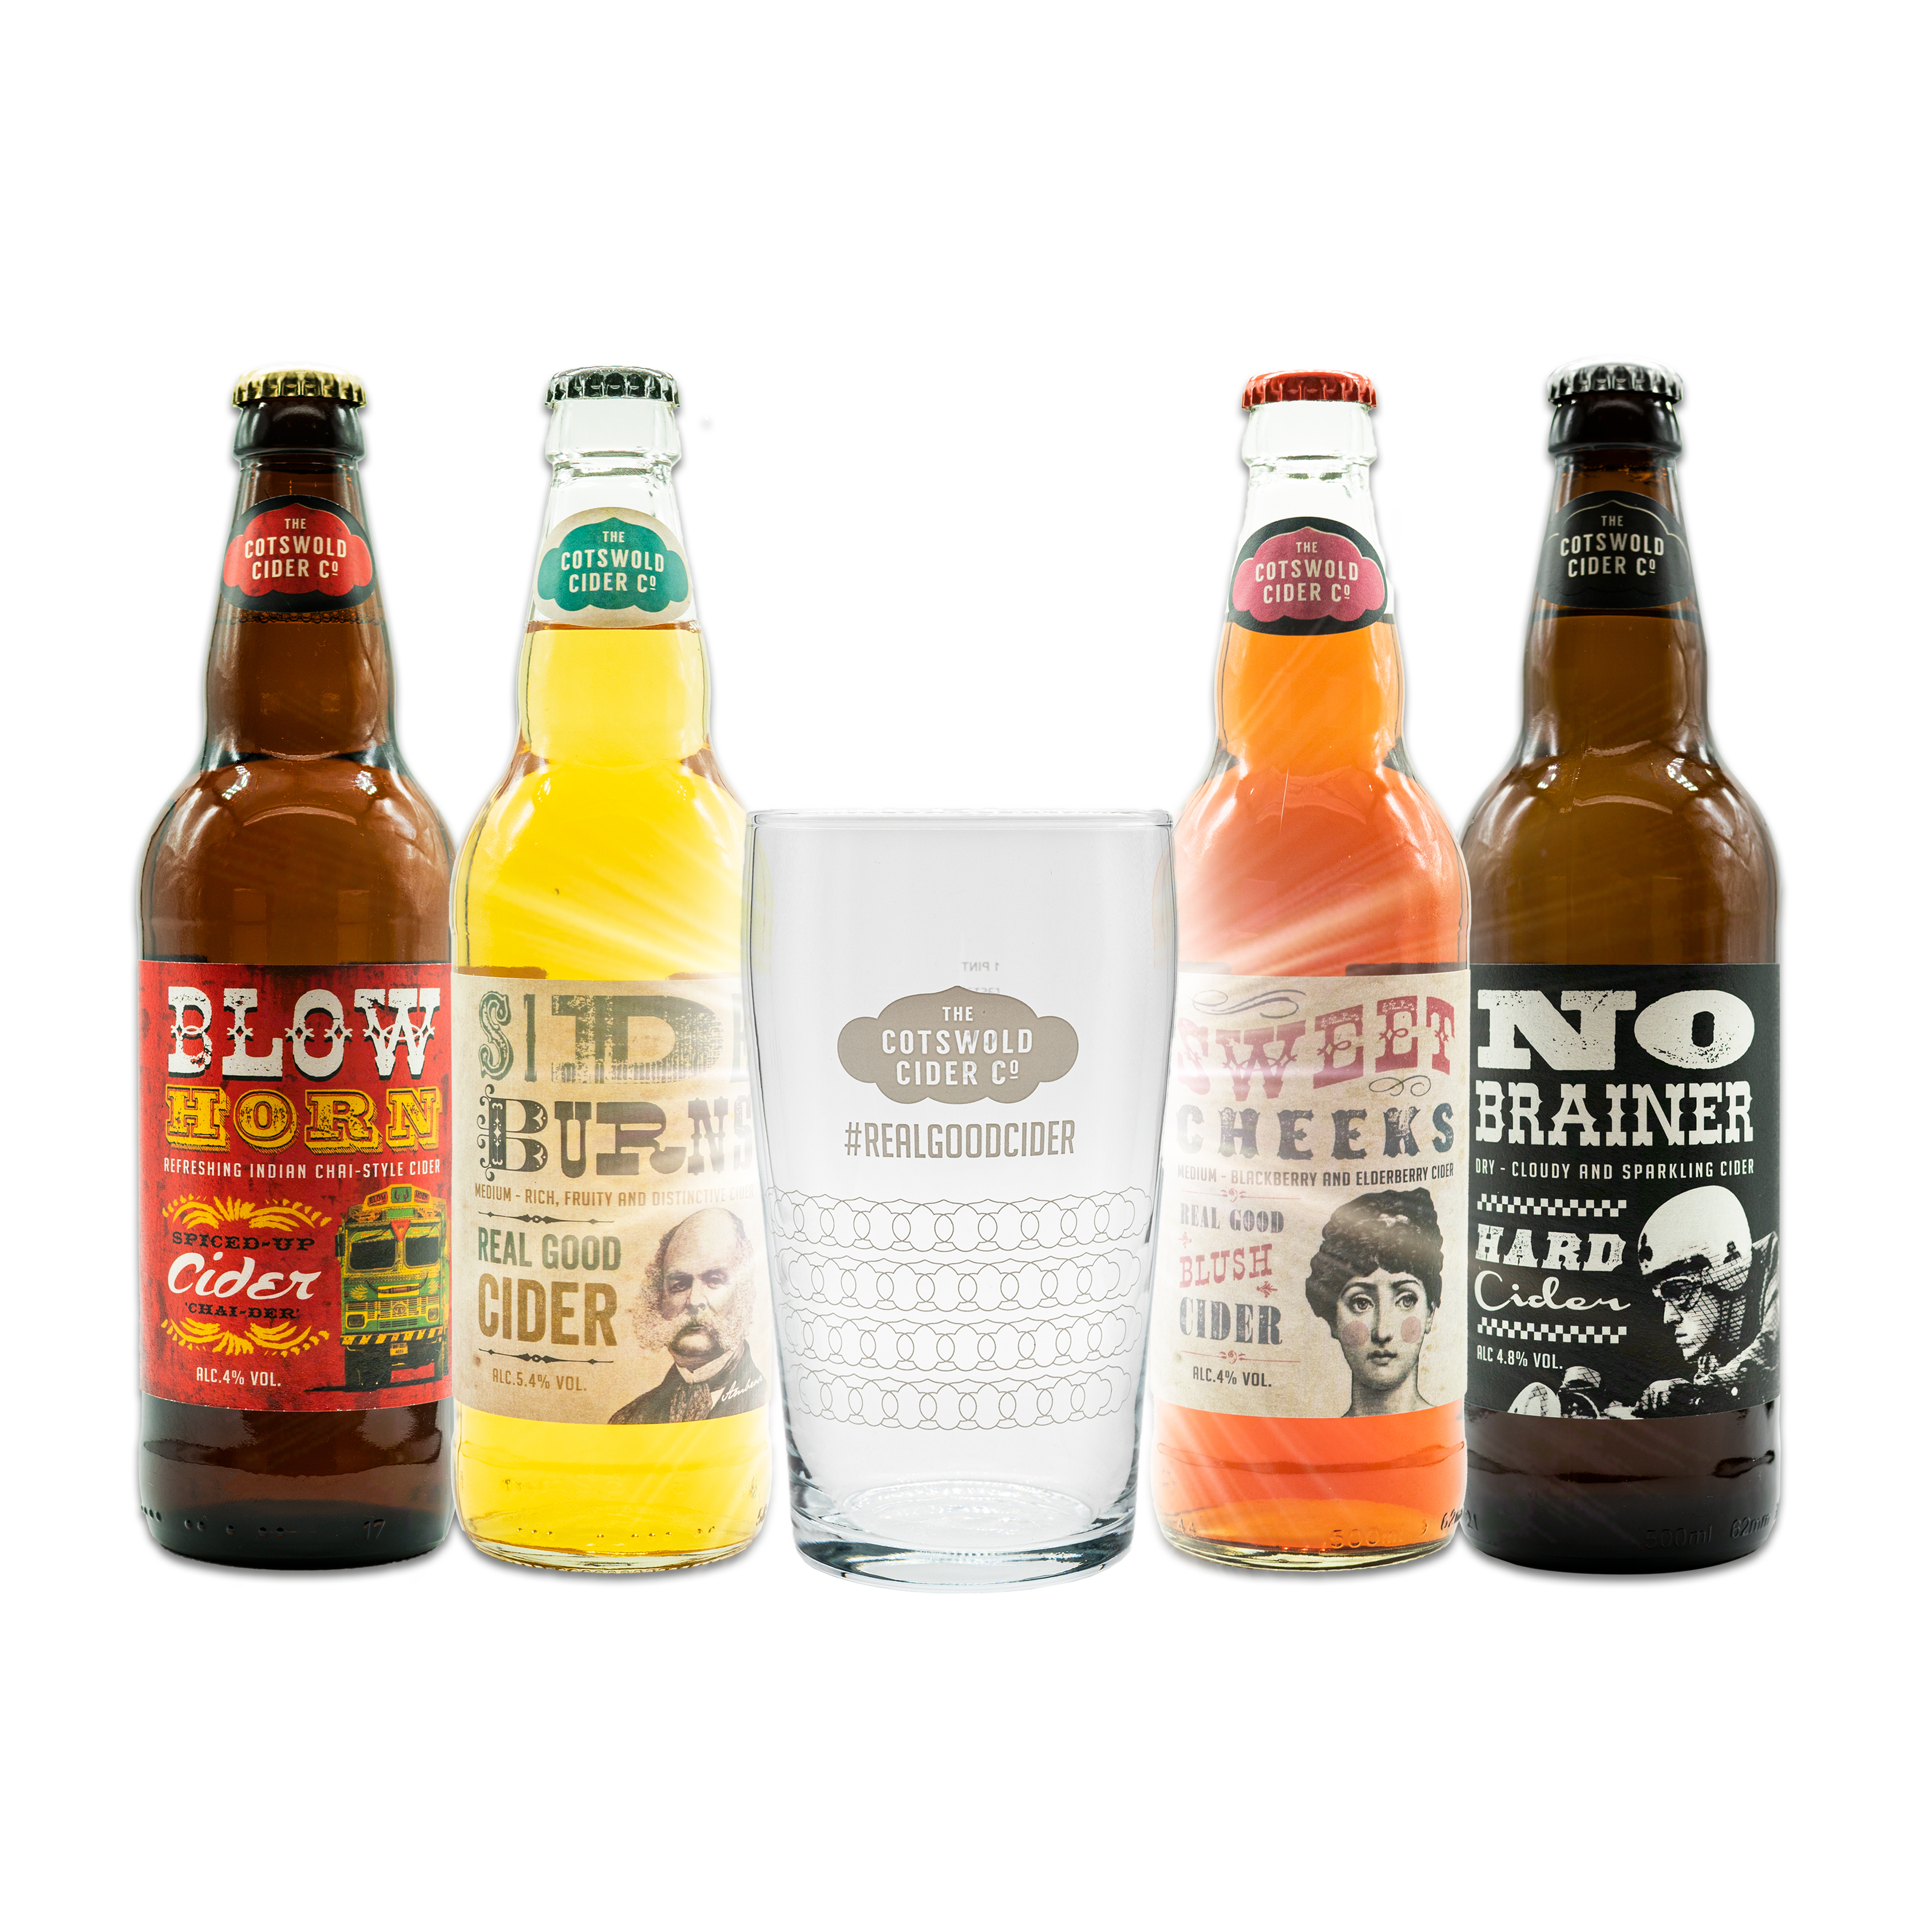 4 Bottle Mixed Box and Pint Glass